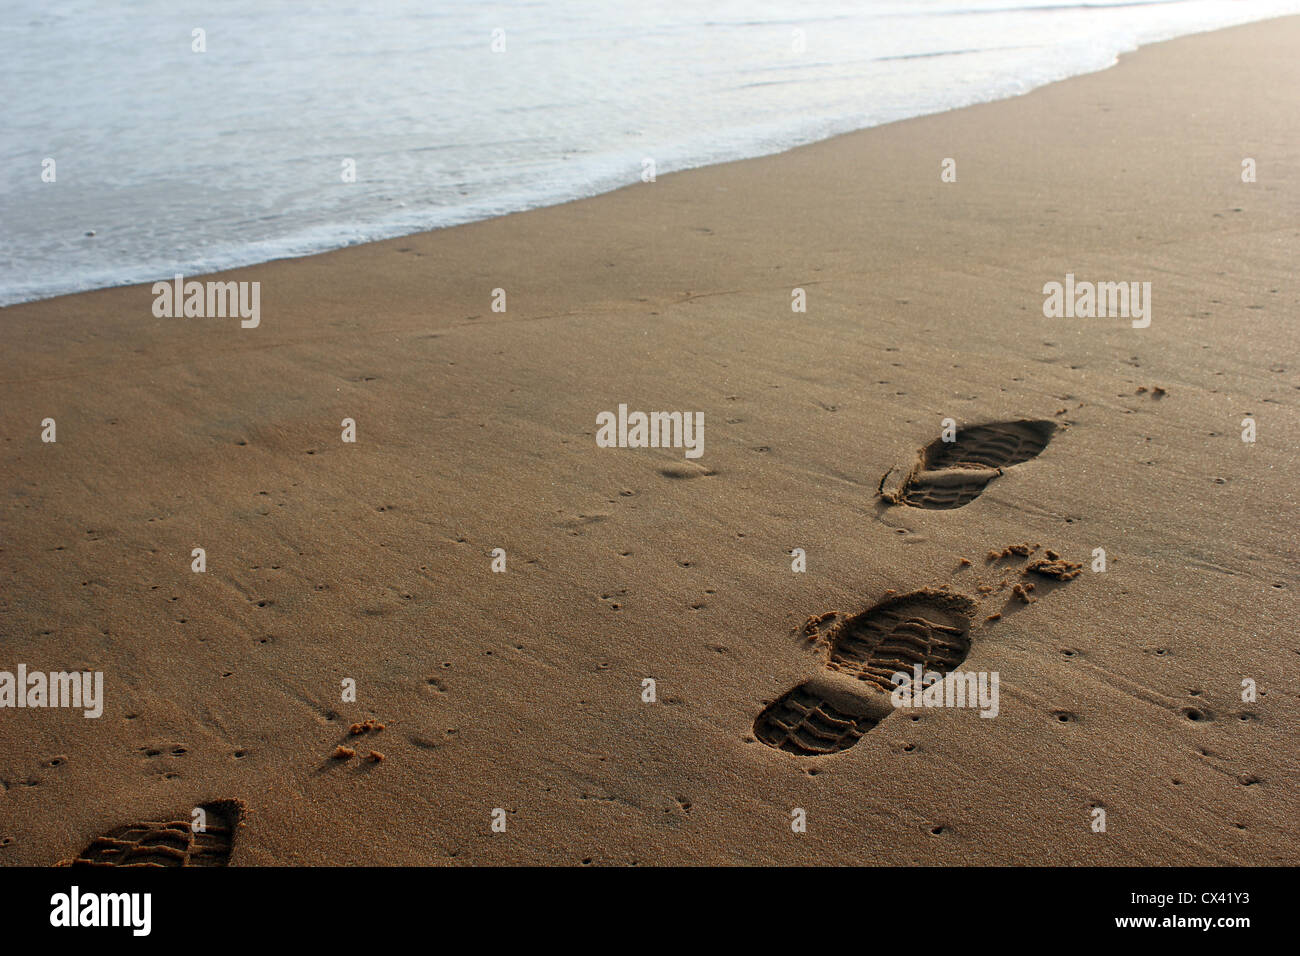 Footprint or shoe print on a beach close to the waves - Stock Image